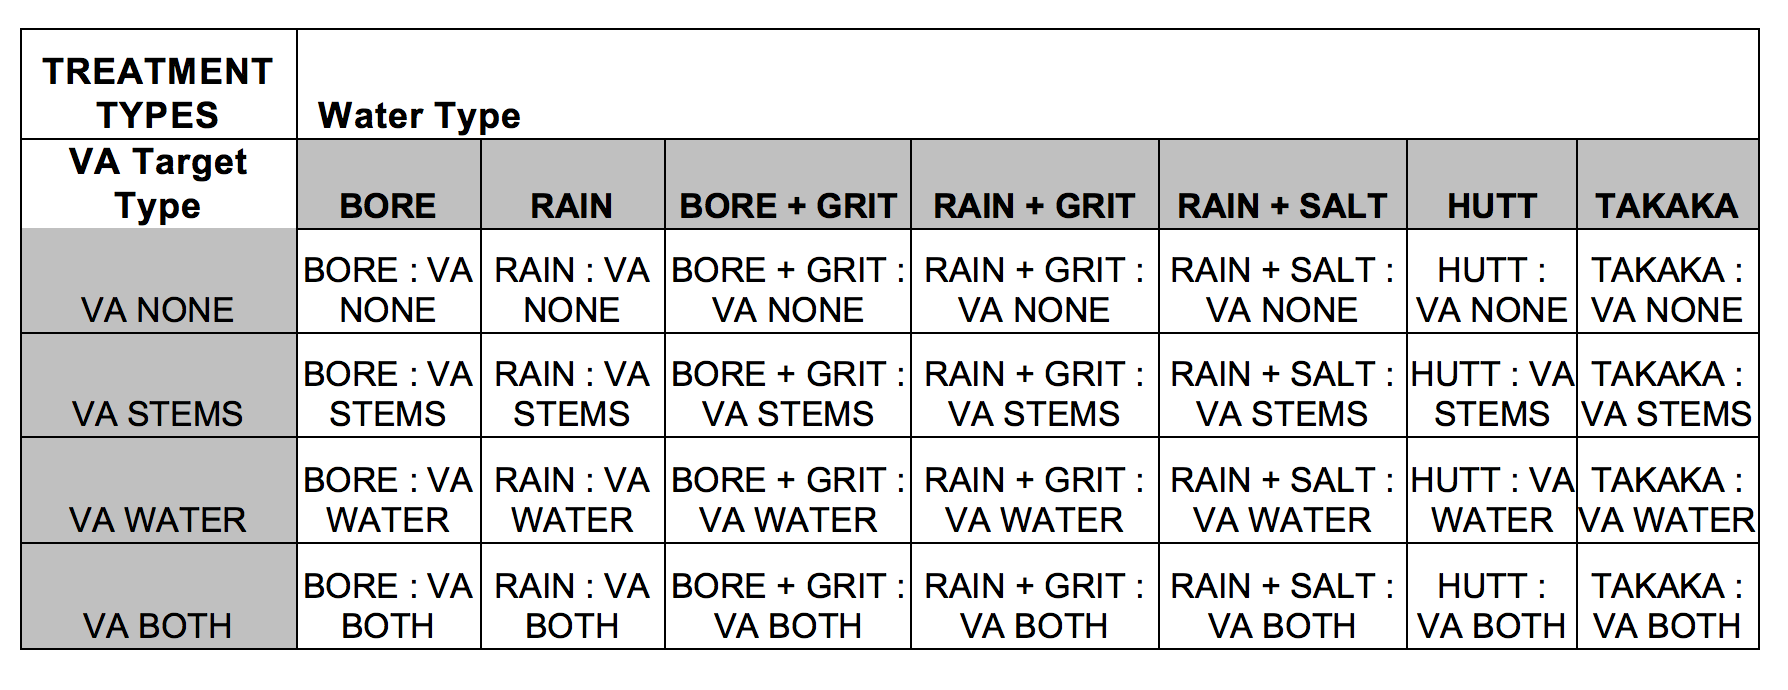 Table 1. List of Experimental Treatments, defined by Water Type and VA Target Type